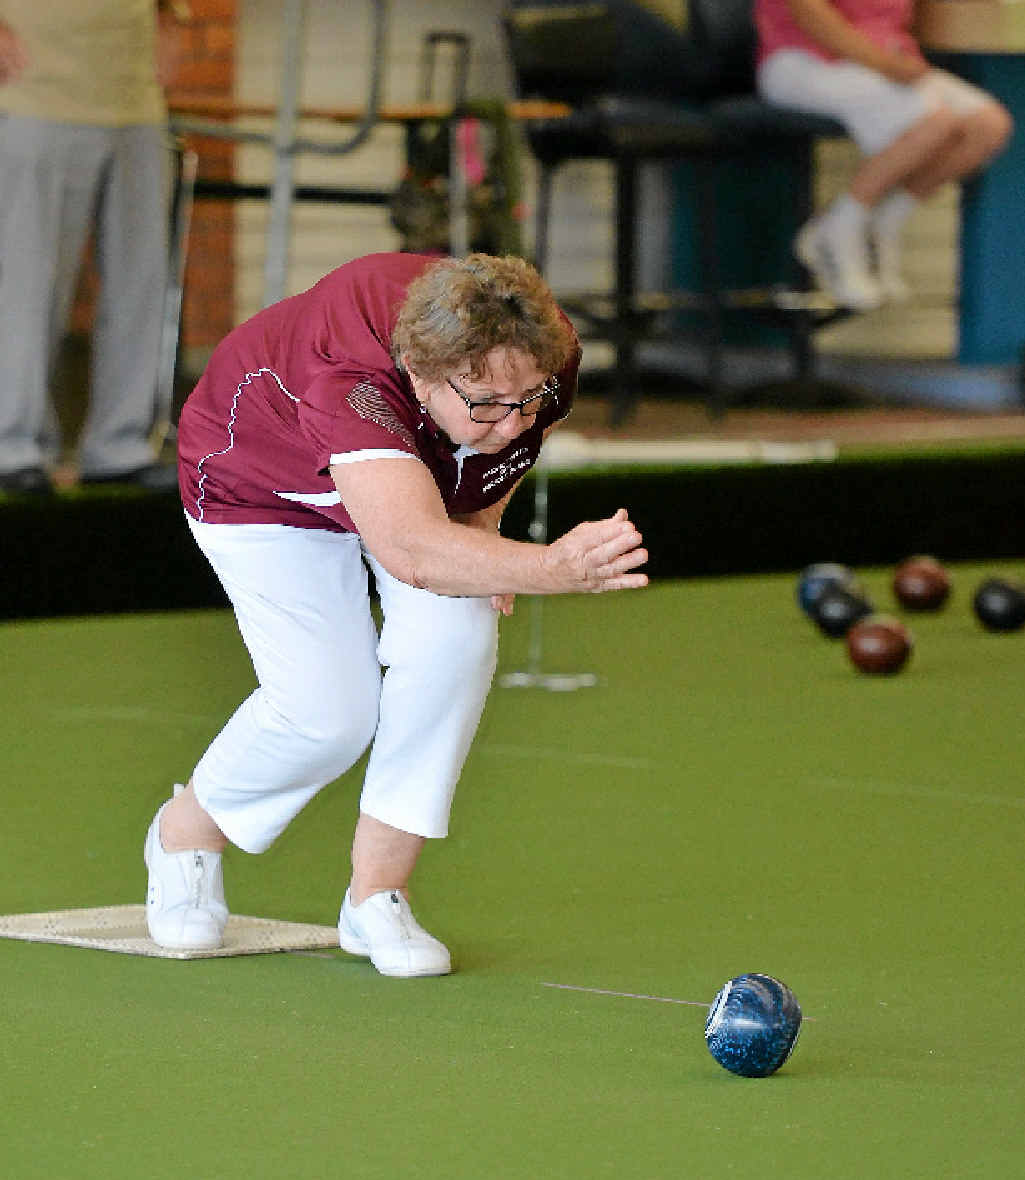 Pauline Turchet rolls one down the green at Mackay City Bowls Club.